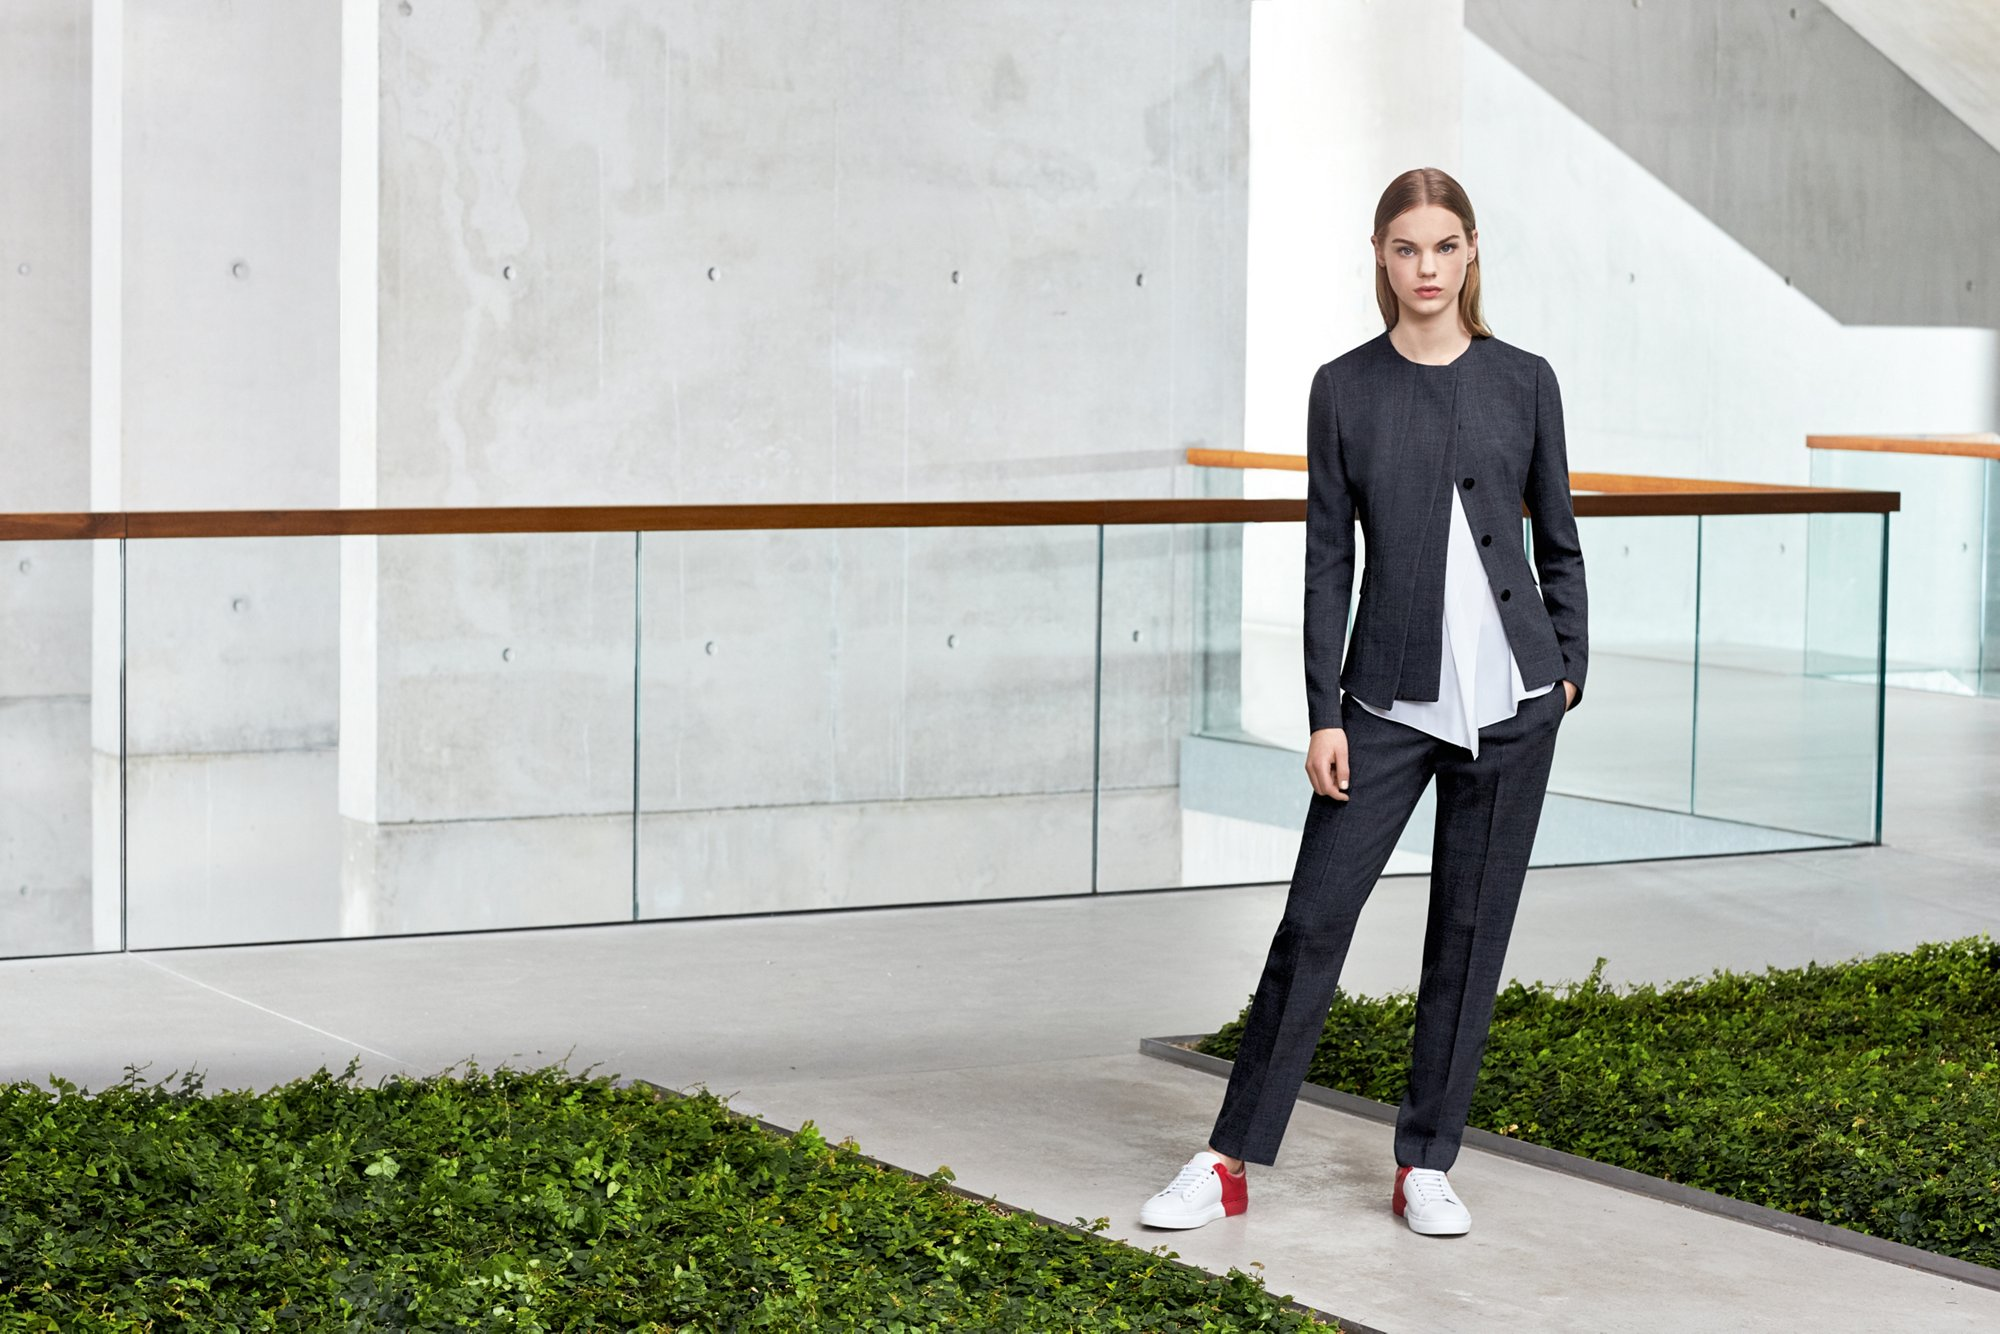 Jacket, top and trousers by BOSS Womenswear